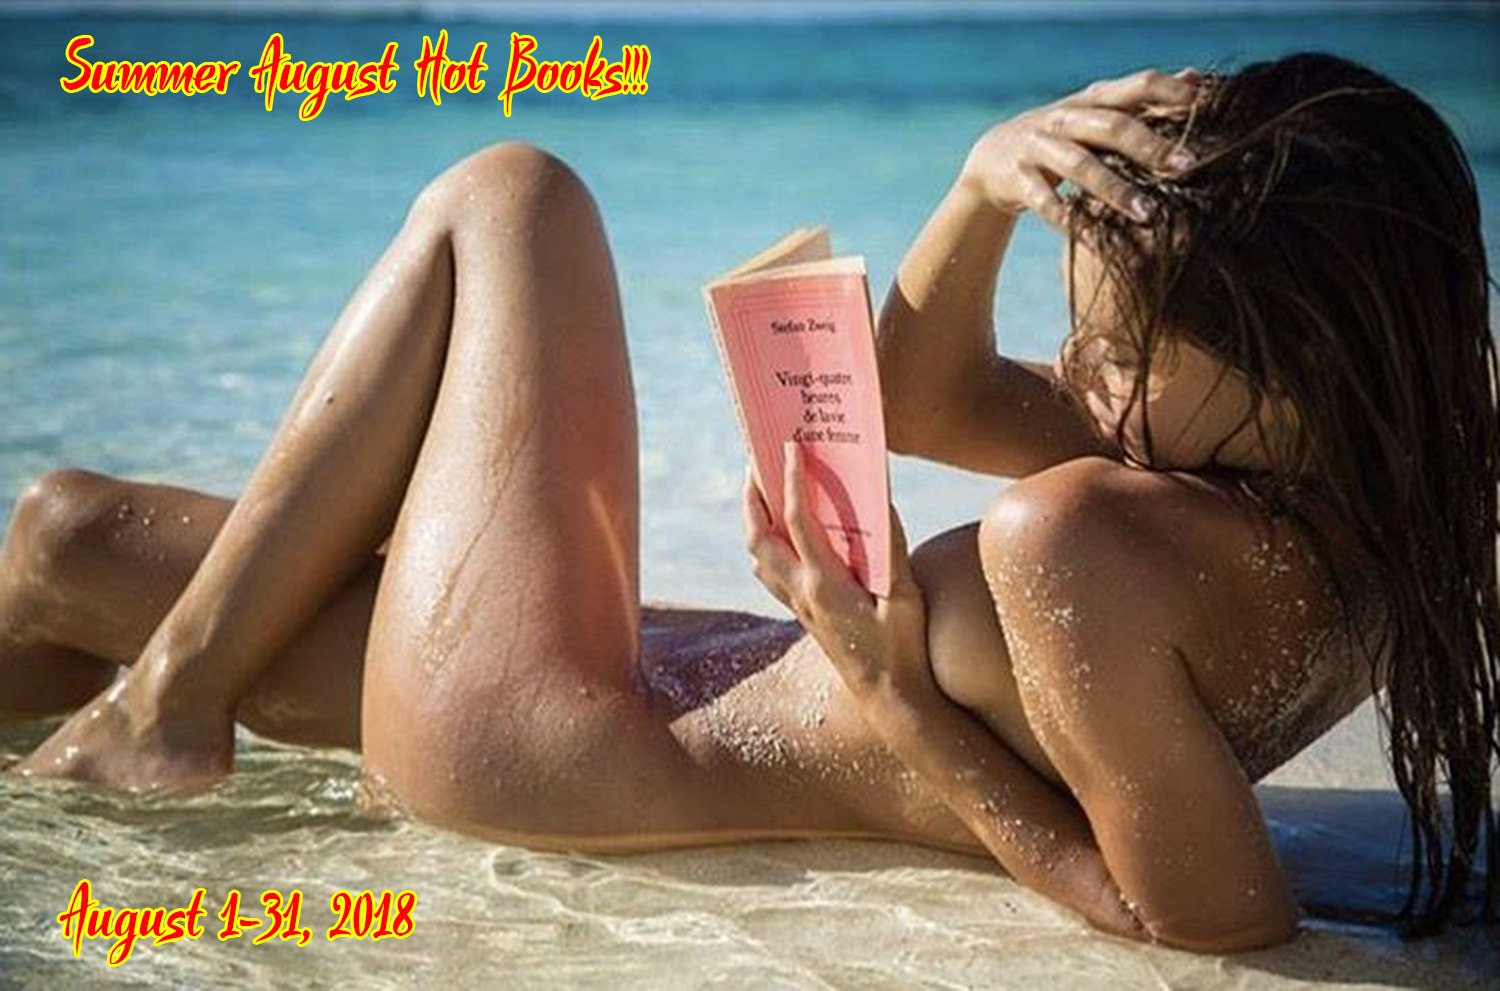 Hot Books For Your Vacations Claim As Many Books As You Like Take Care And Have A Summer Full Of Erotica And Romance